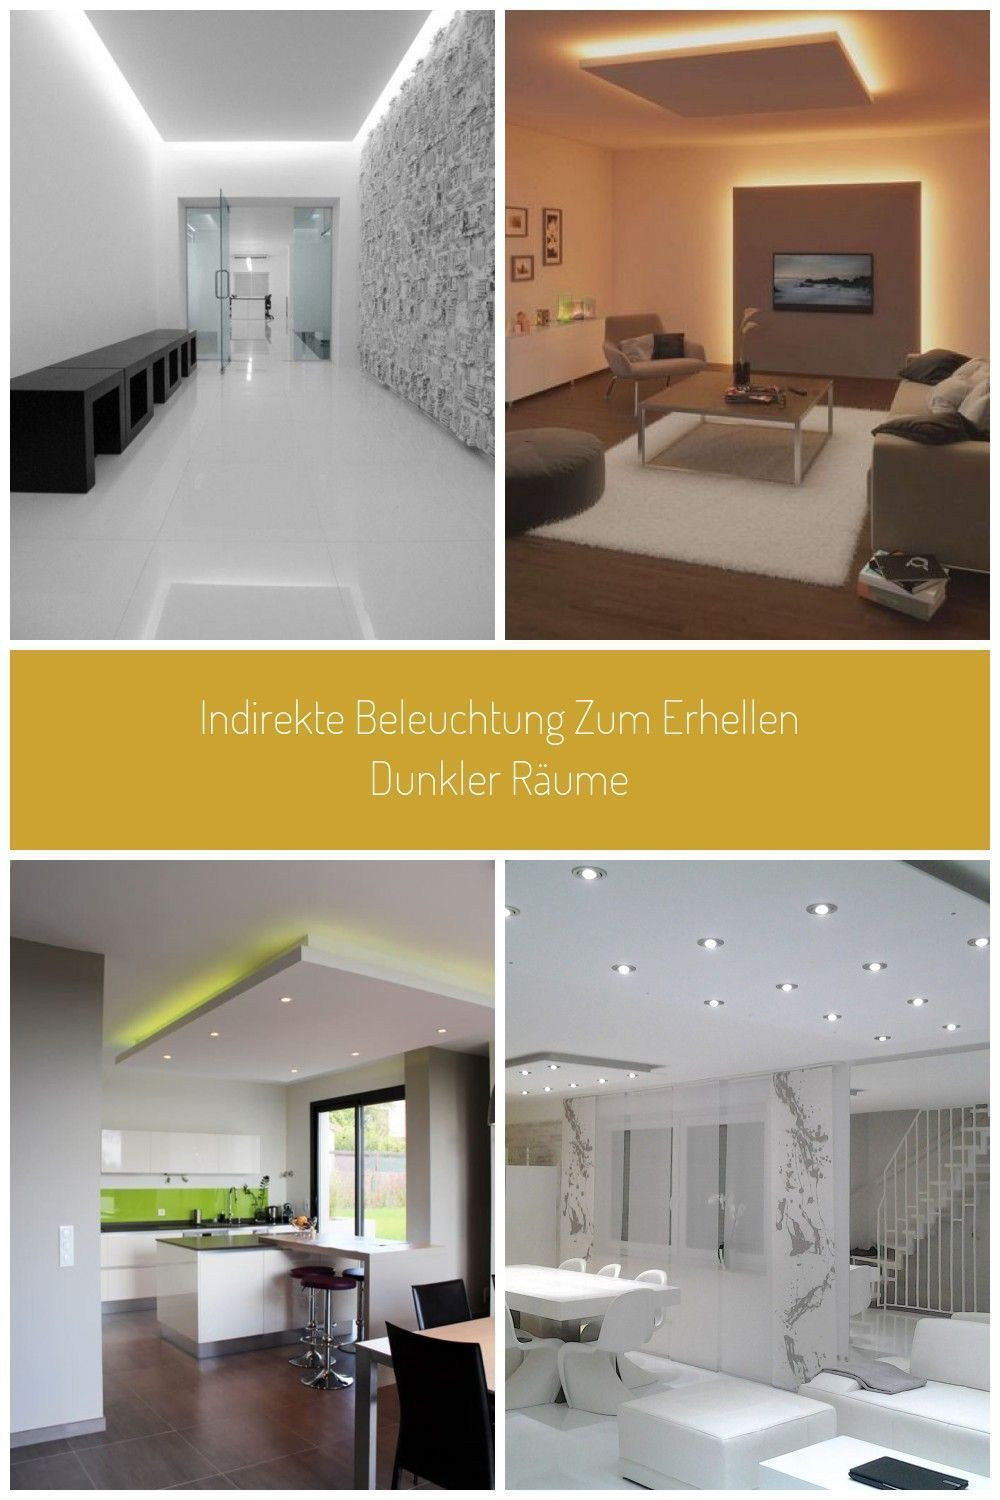 Indirekte Beleuchtung Decken Und Wandgestaltung Indirekte Beleuchtung Deck In 2020 Affordable Rooms Indirect Lighting Home